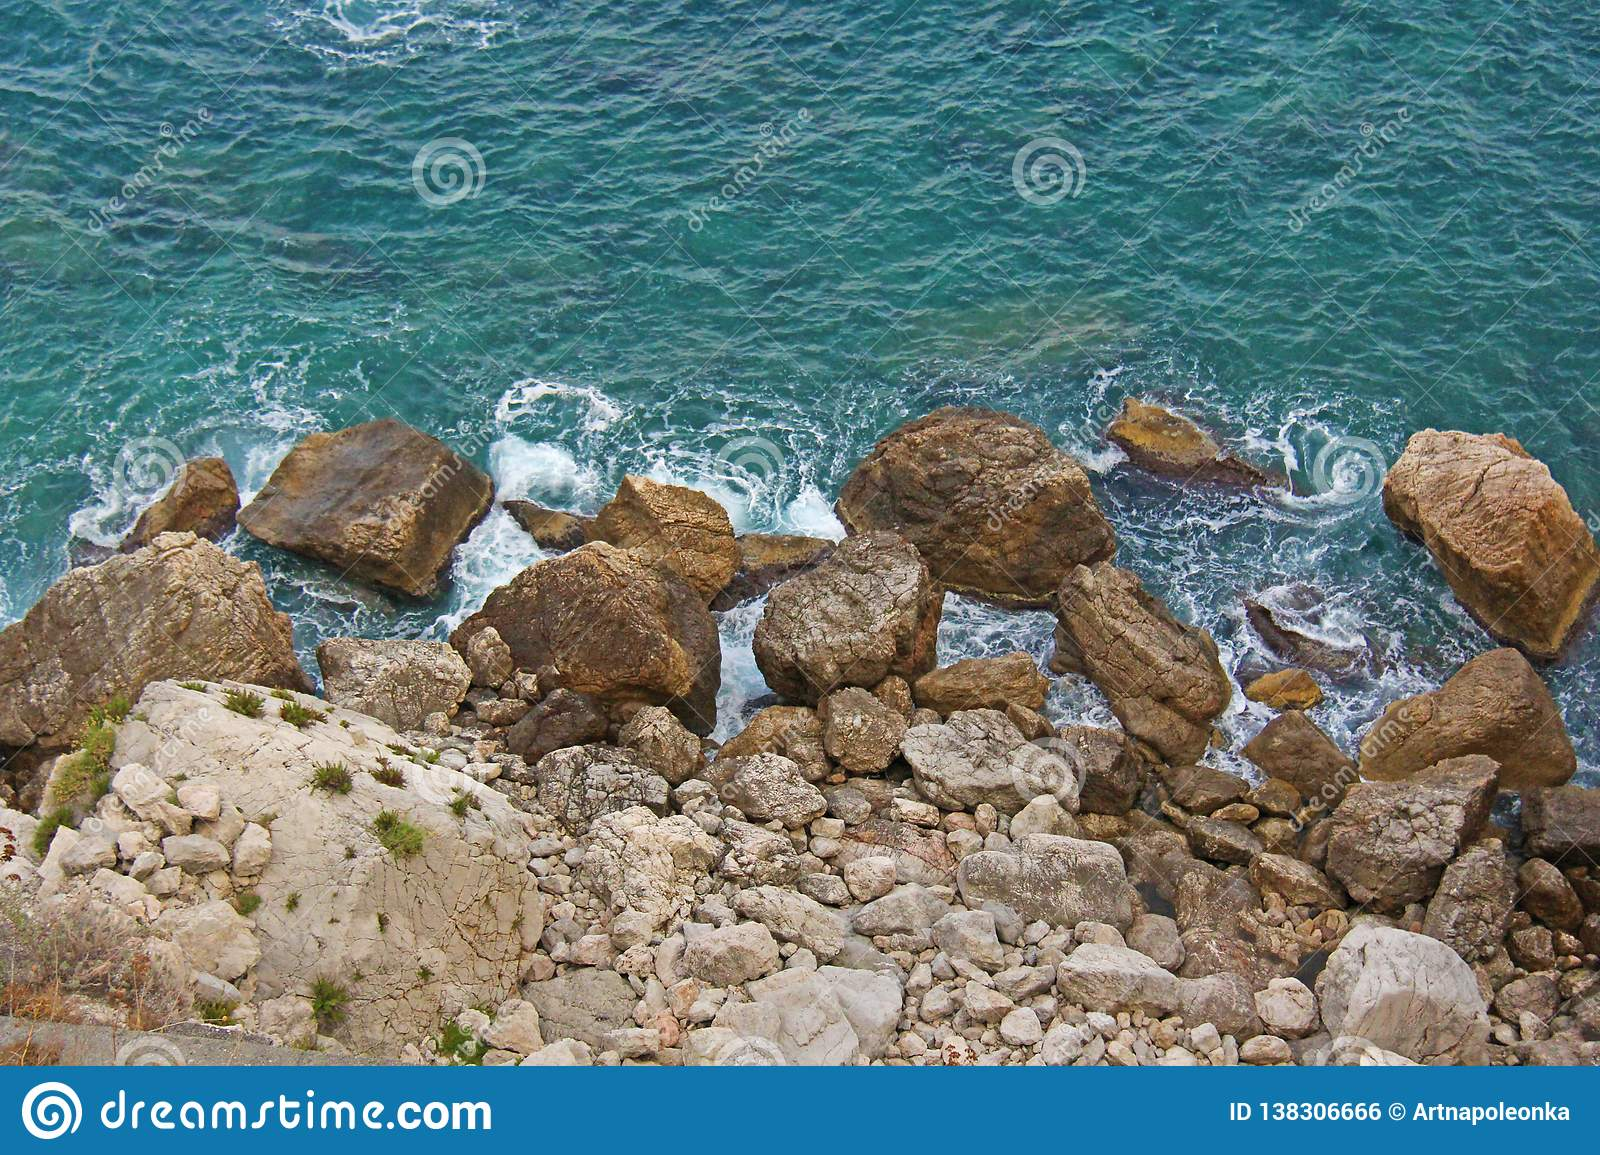 View from Above on the Sea and Stones or Rocks in the City of Taormina. The island of Sicily, Italy. Beautiful and Scenic View of